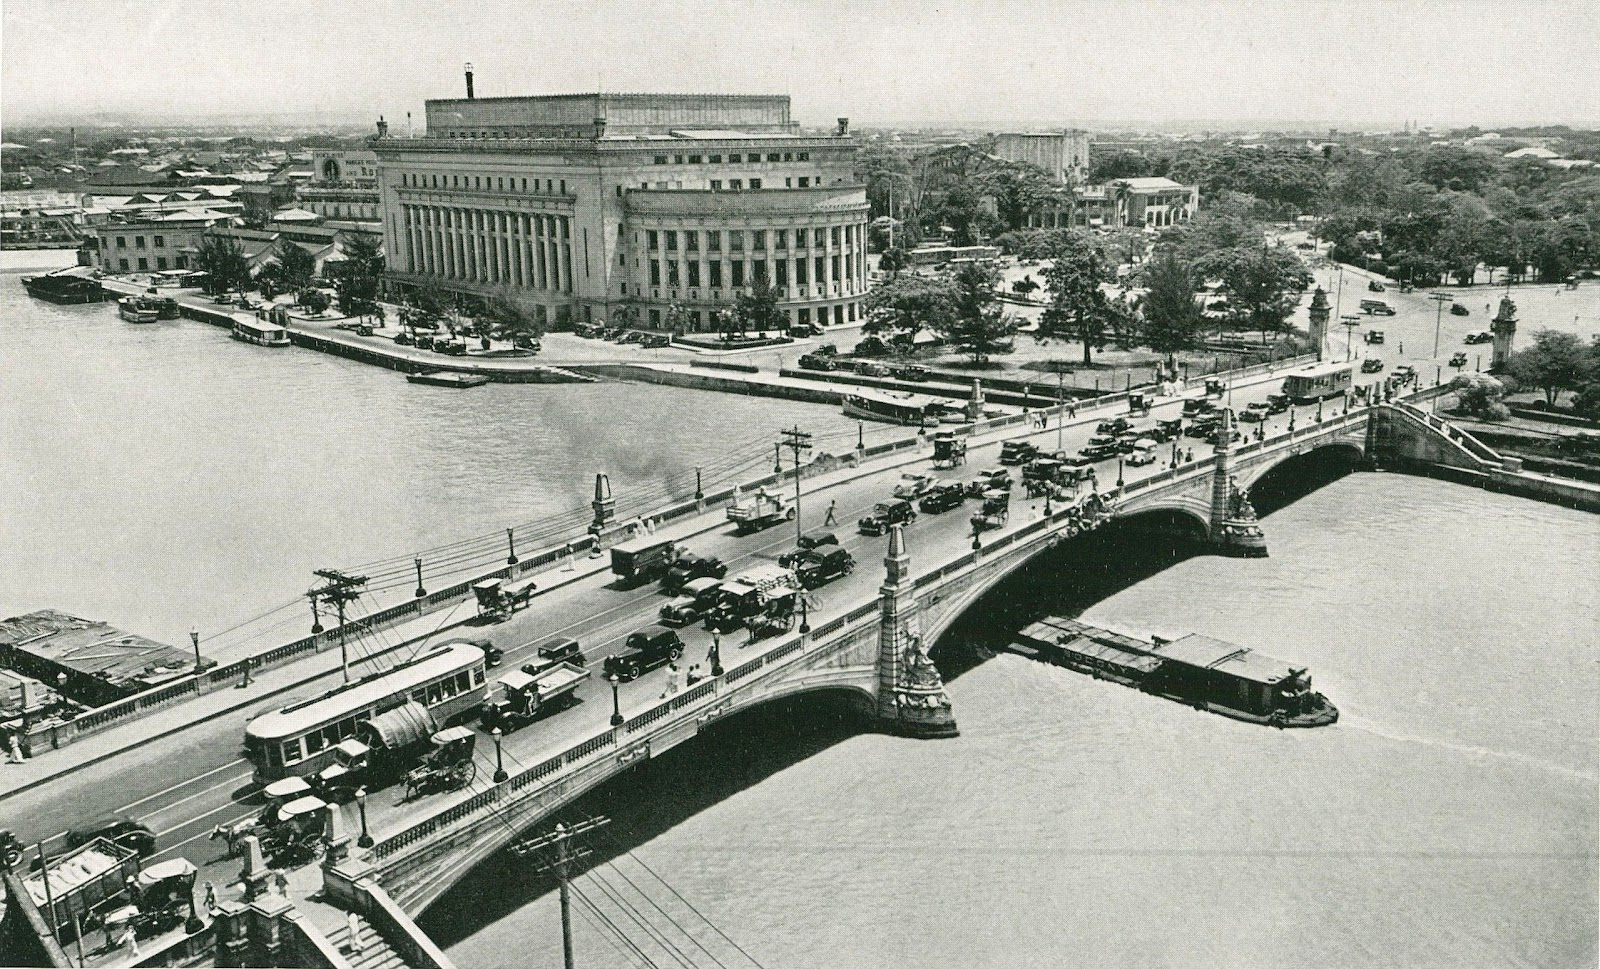 An example of David Burnham's City Beautiful plan is seen in this view of the Manila Central Post Office and Jones Bridge, circa 1930s.